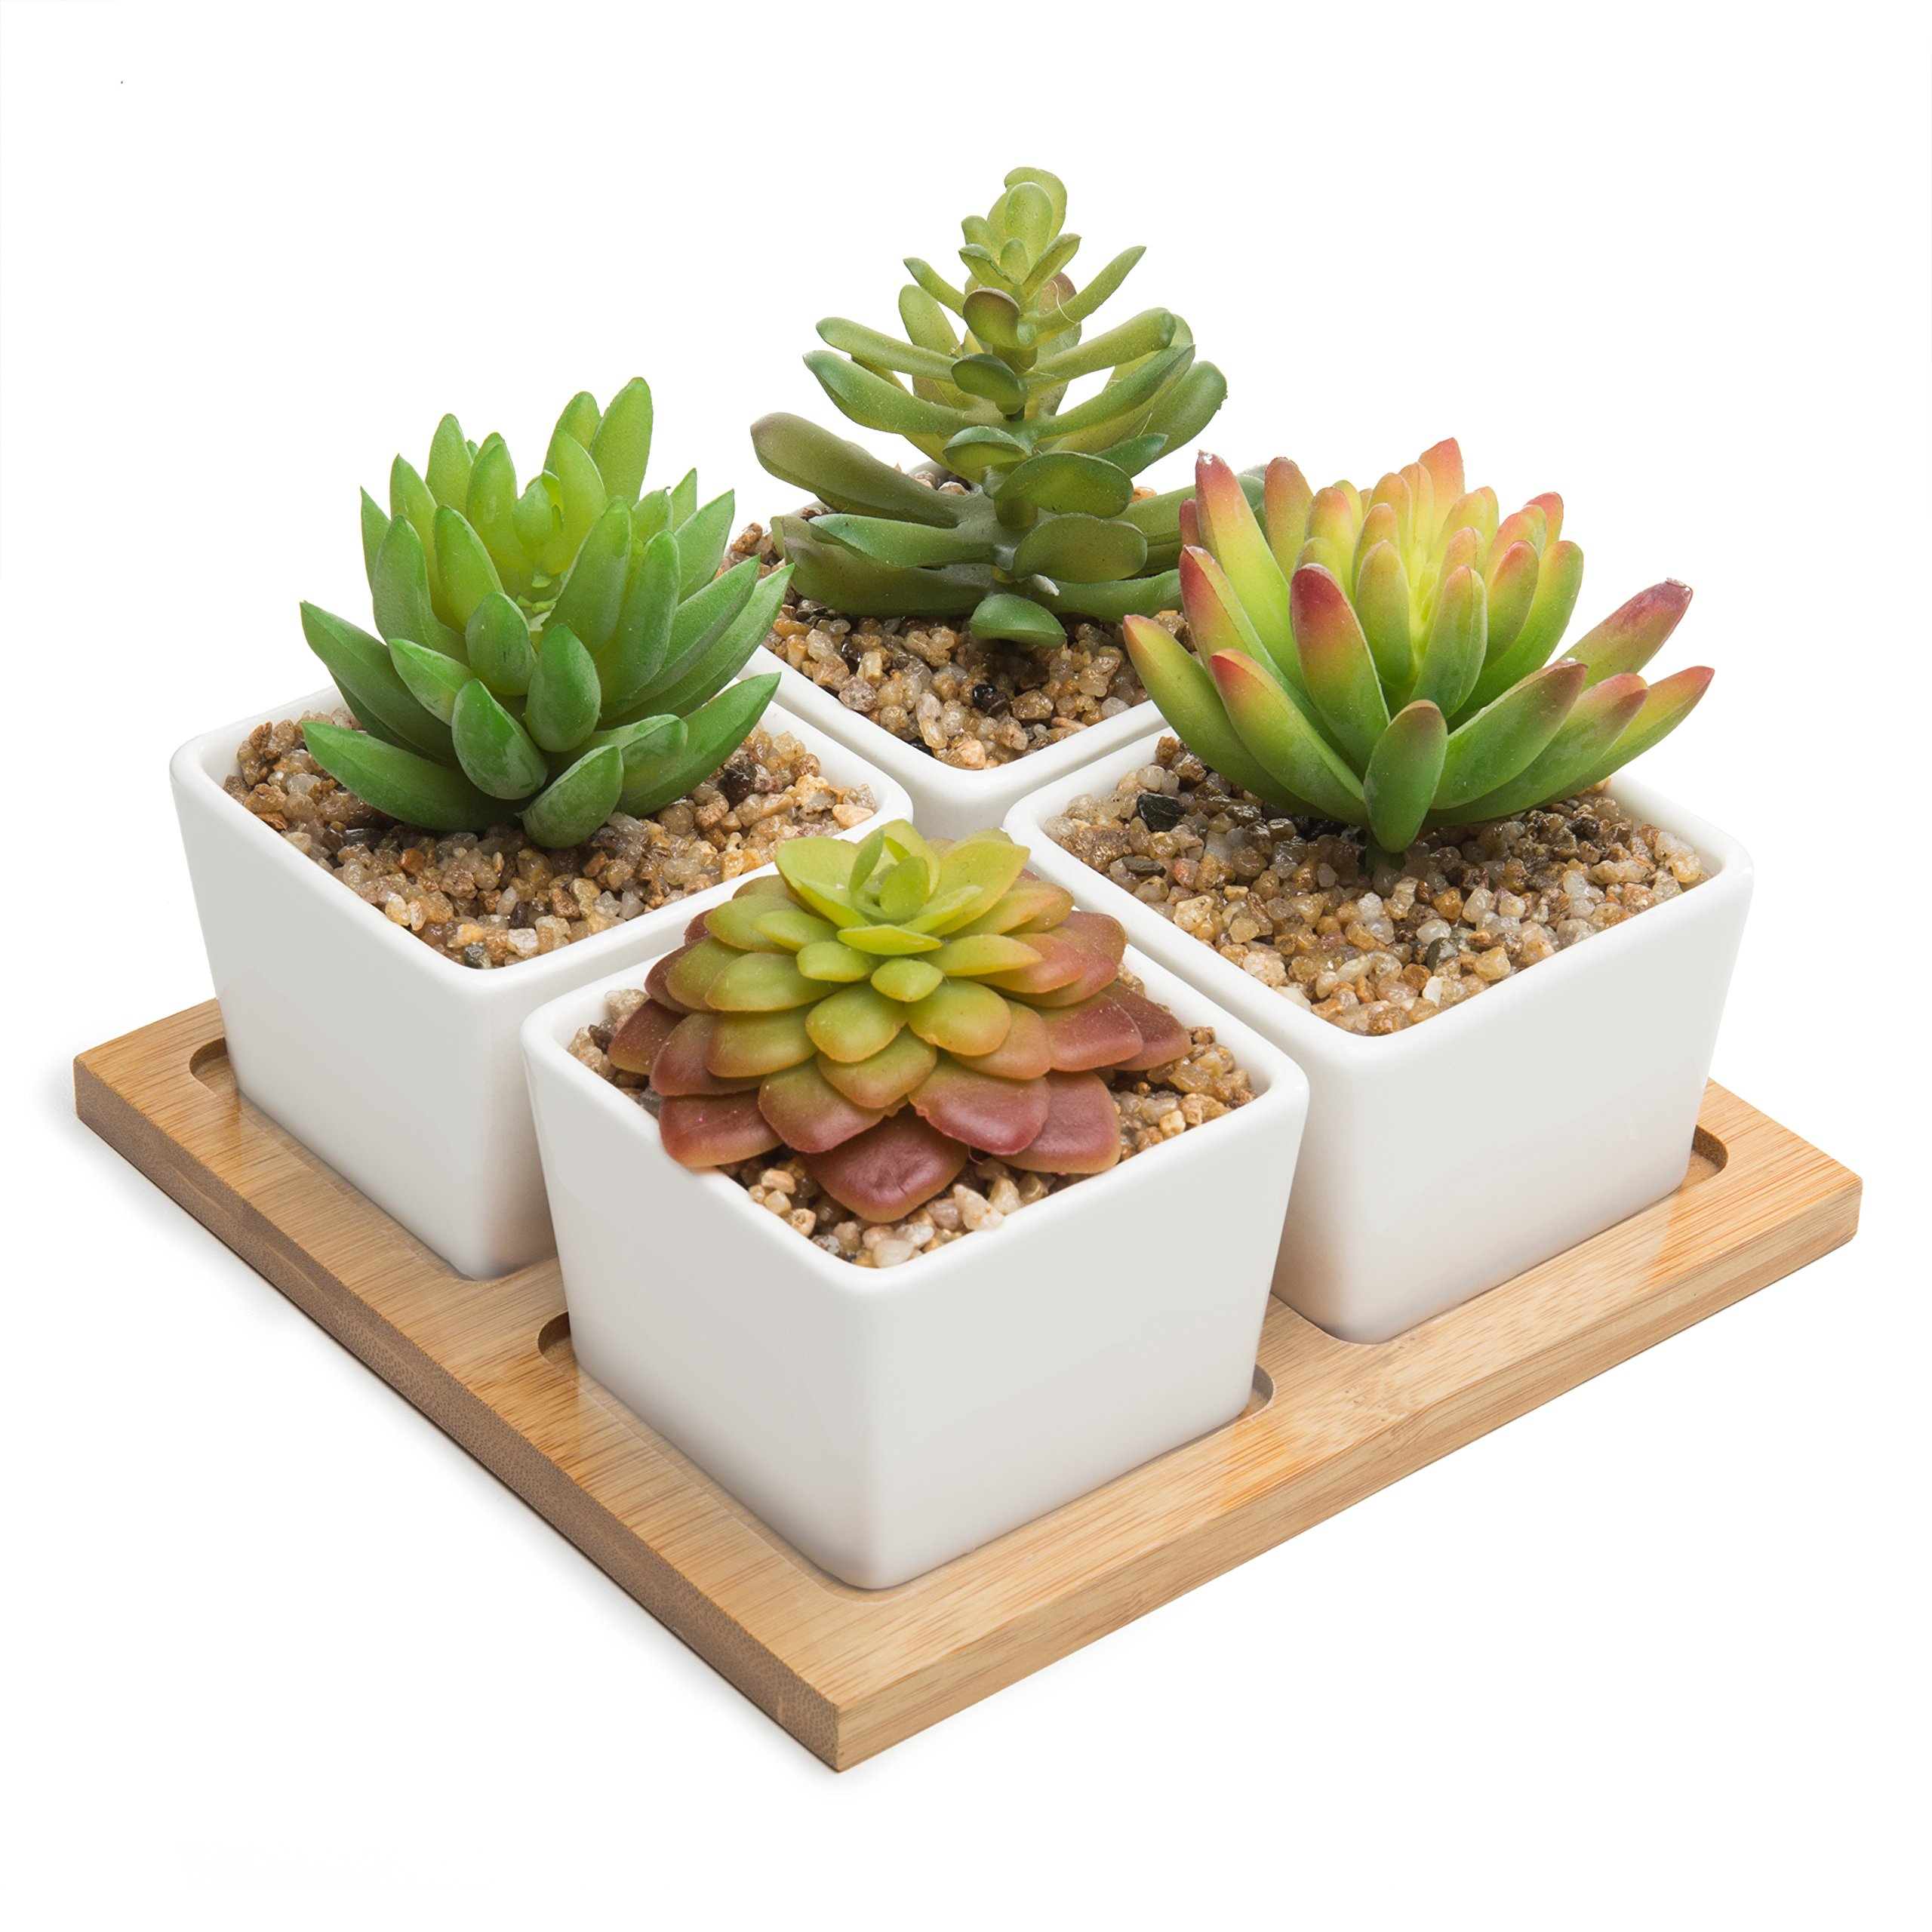 MyGift Set of 4 Artificial Succulents in White Ceramic Pots with Removable Bamboo Tray